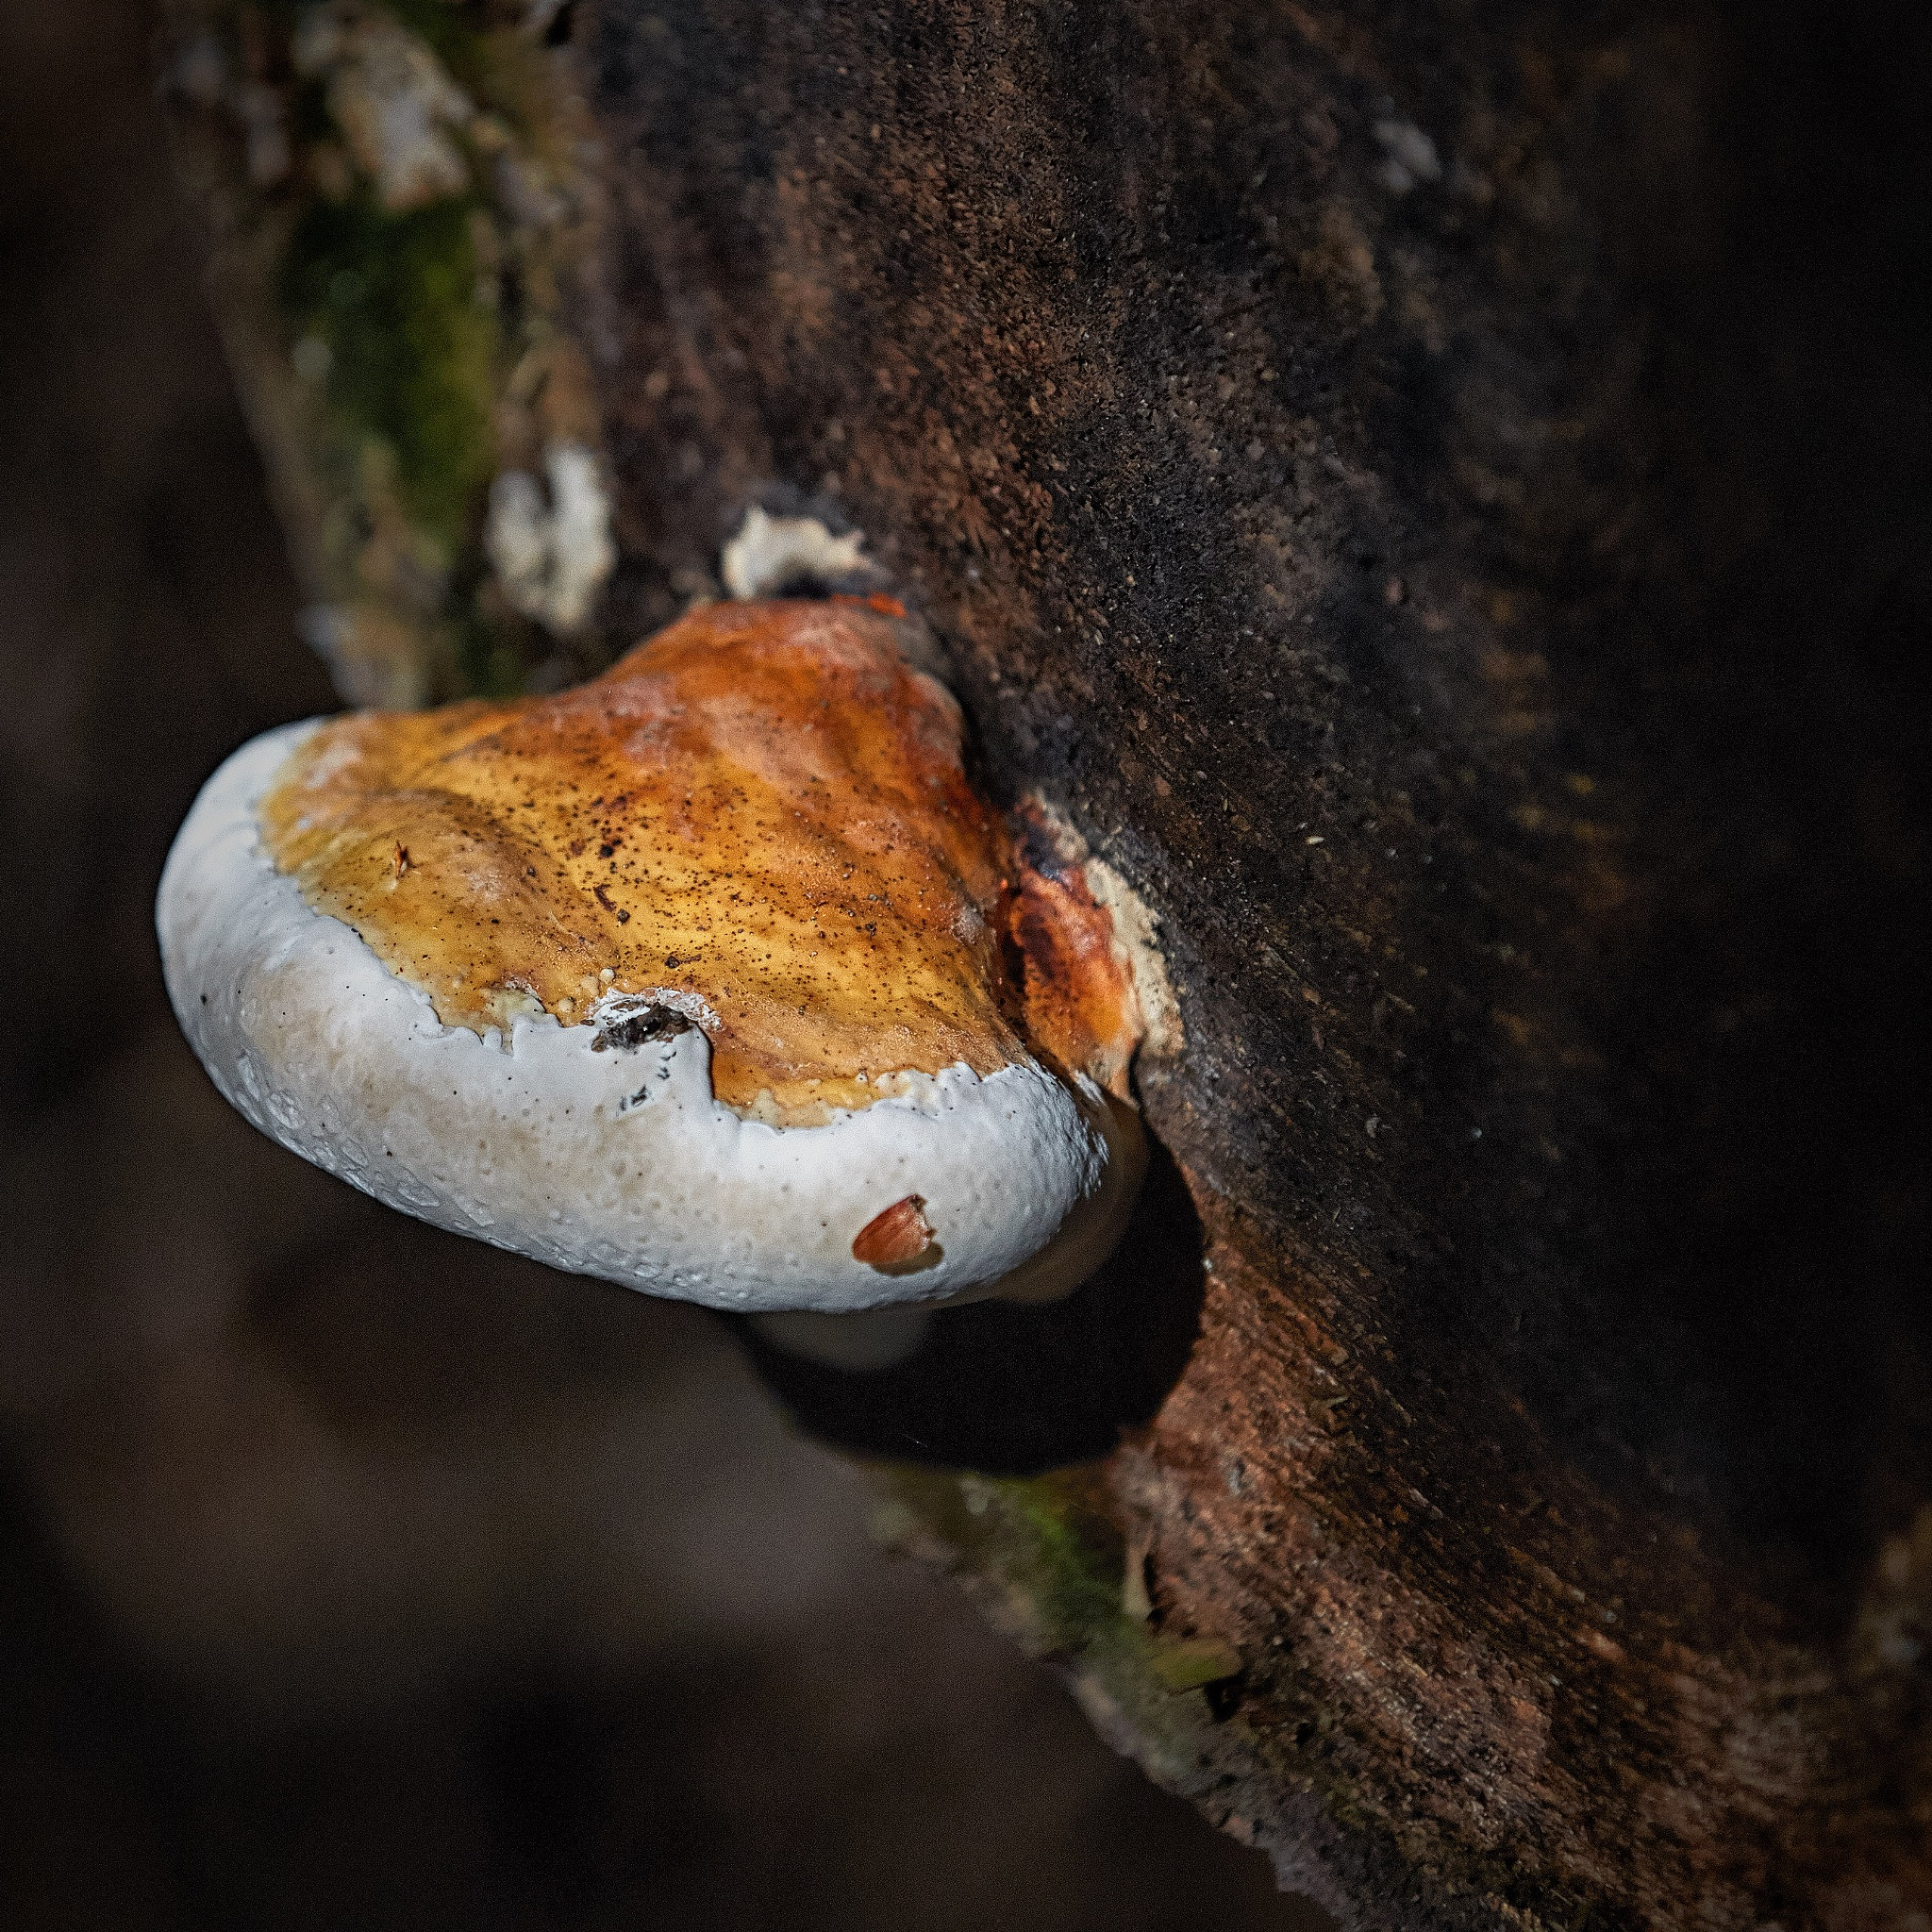 Forest fungus #1 by Greg Mullaly